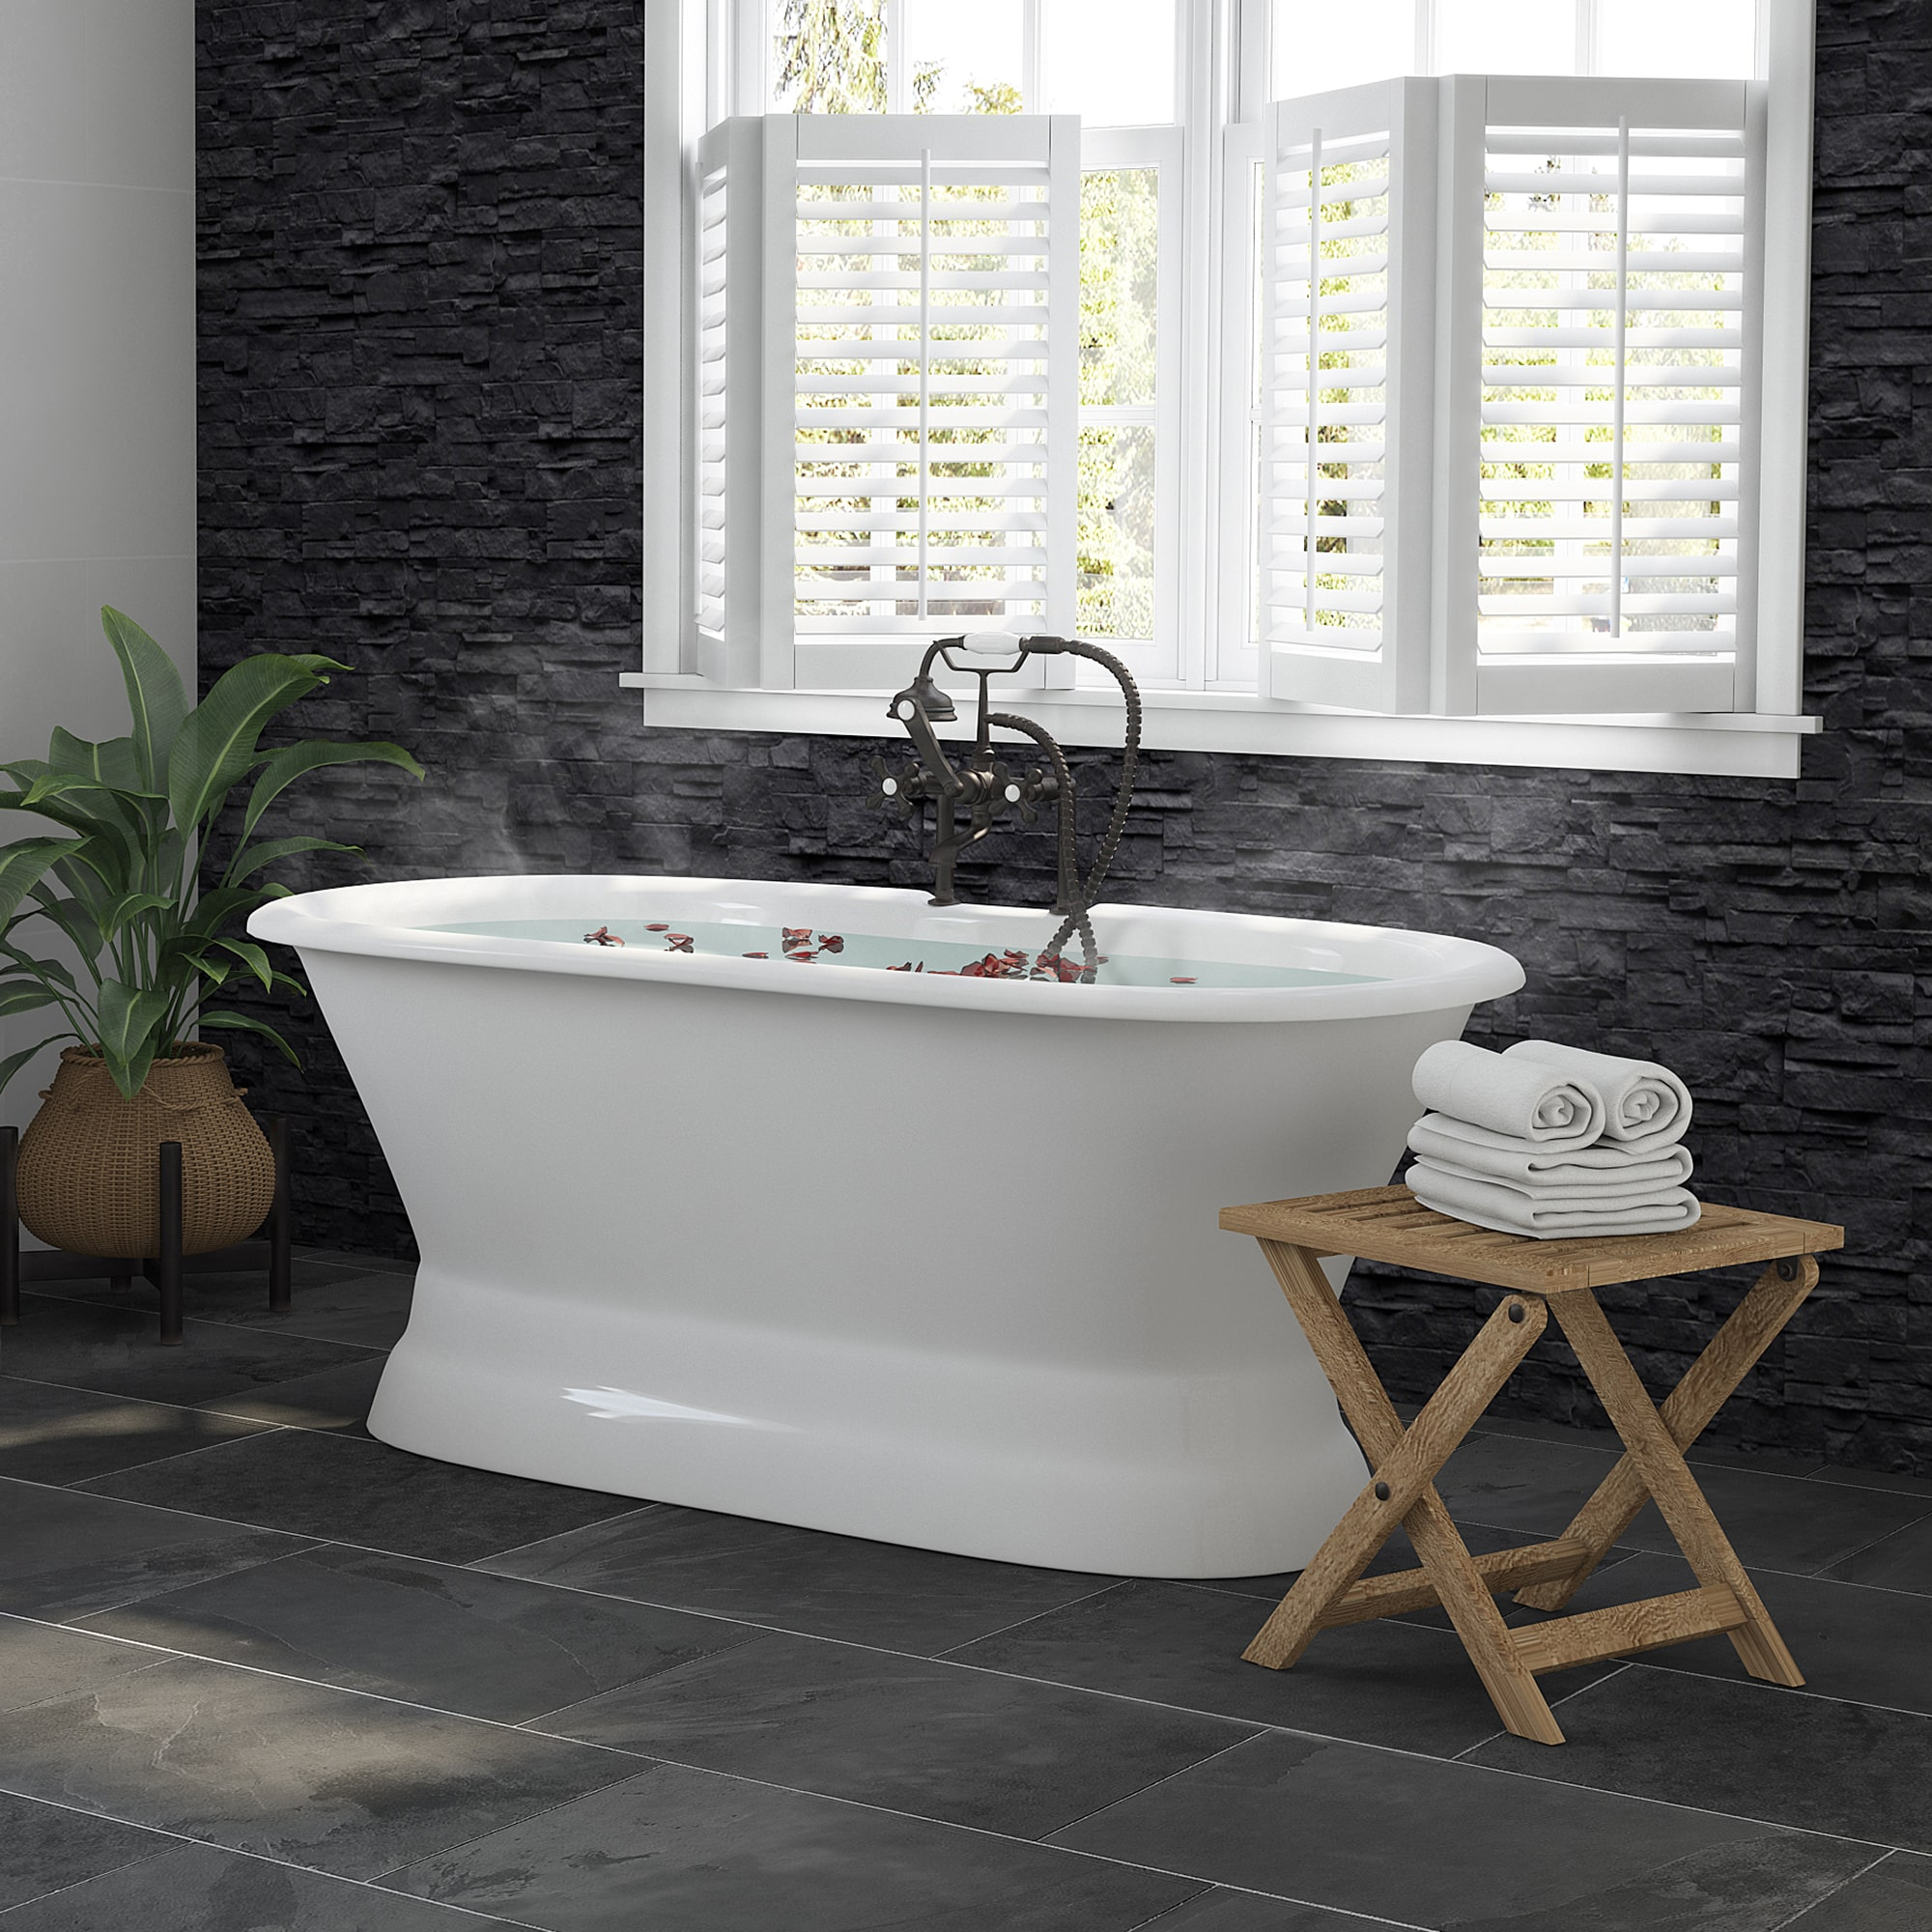 cast iron, pedestal, double ended tub,